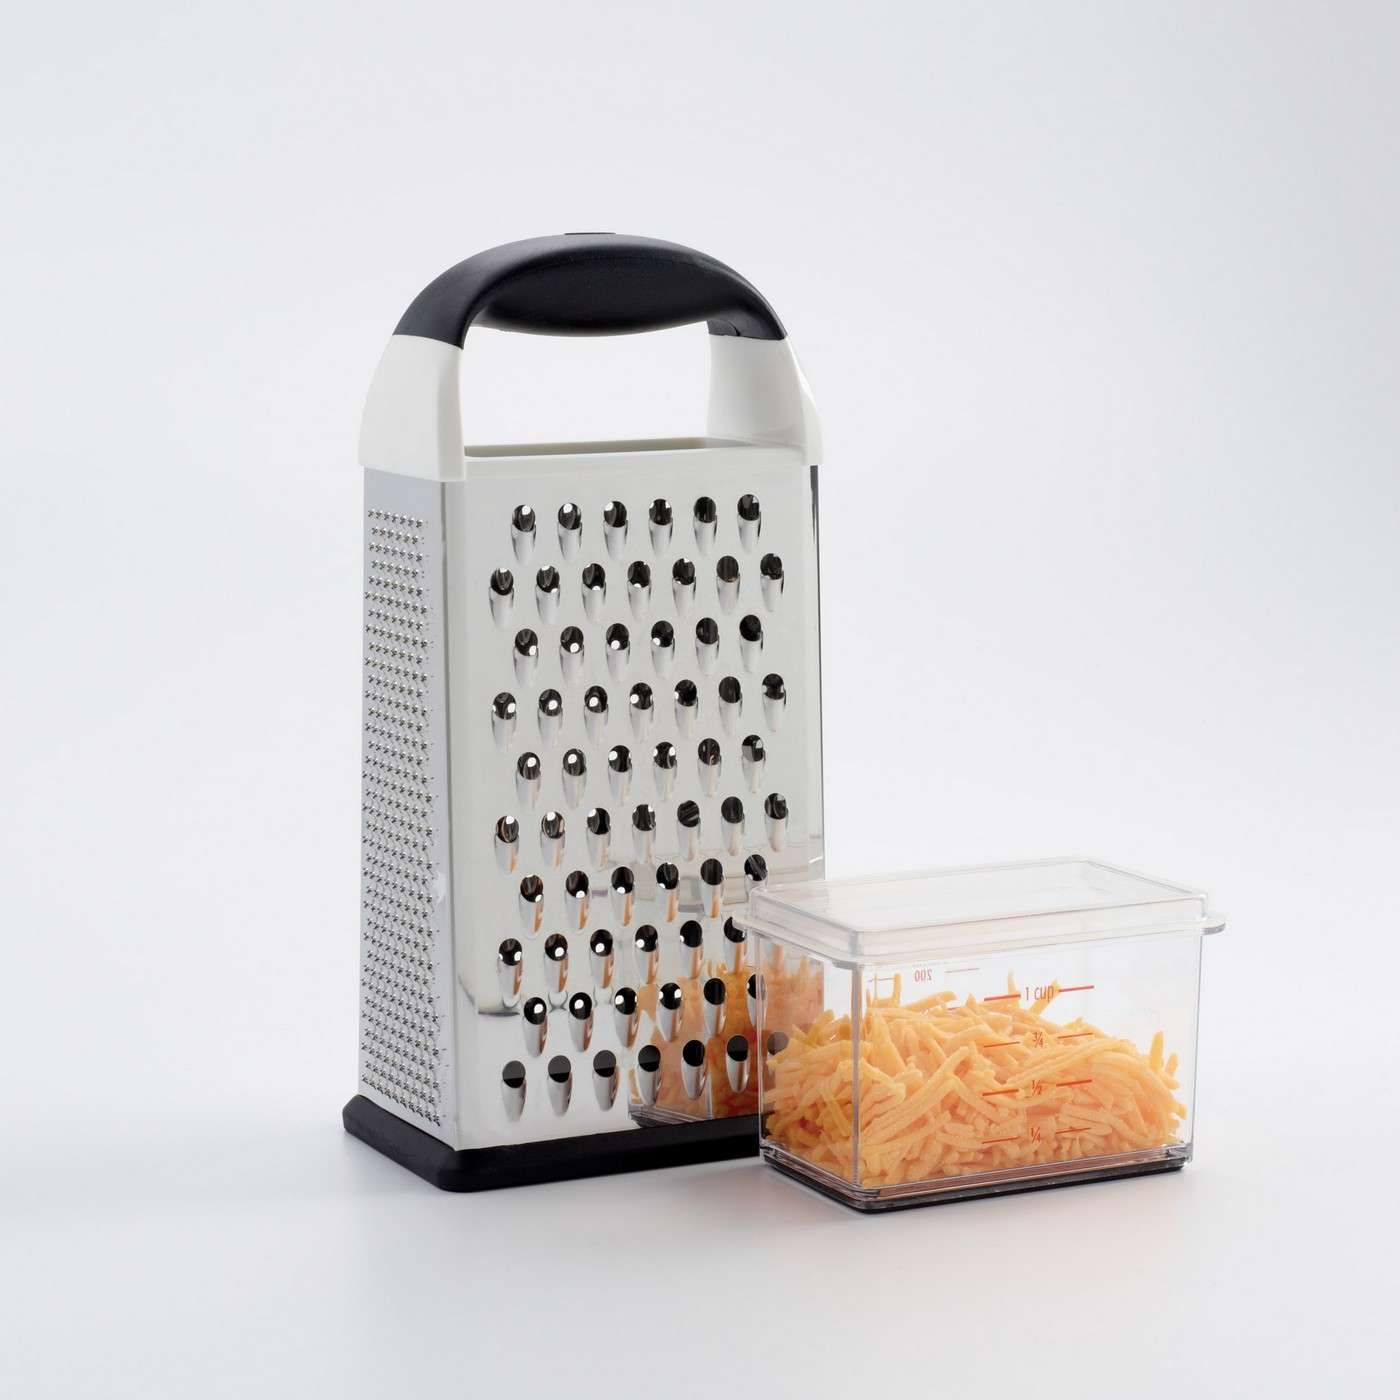 Box Grater With Images Essential Kitchen Tools Good